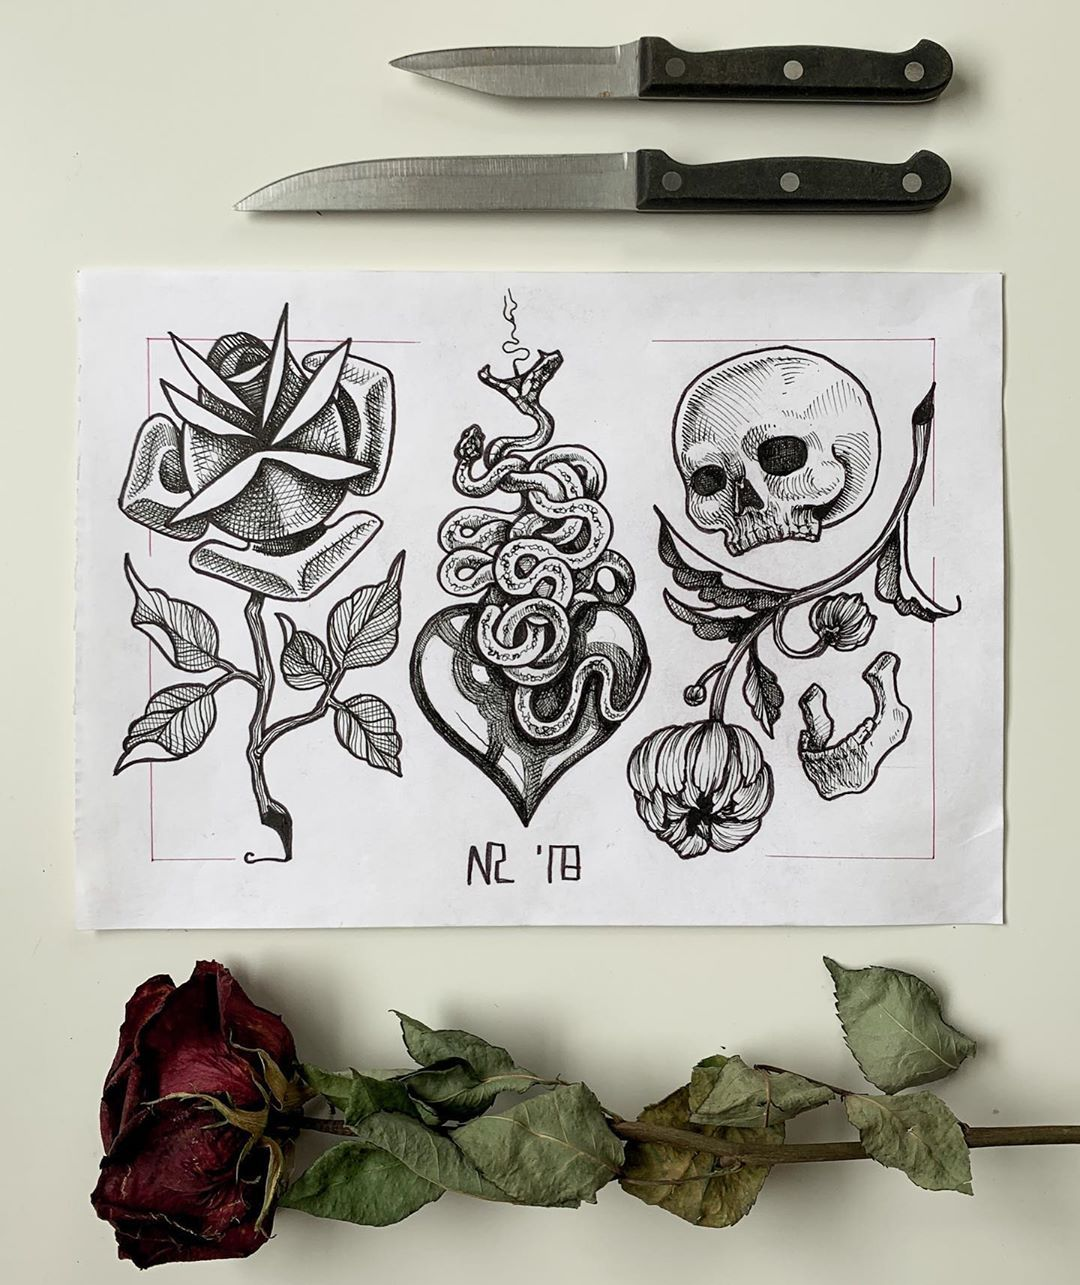 🥀Romance/poison/death🥀 • • • • • #tattoo #drawing #flashtattoo #blackandwhite #Sketch #sketchbook #rose #design #tattoodesign #skull #ink #blackandgrey #linework #snake #snakes #death #latergram #composition